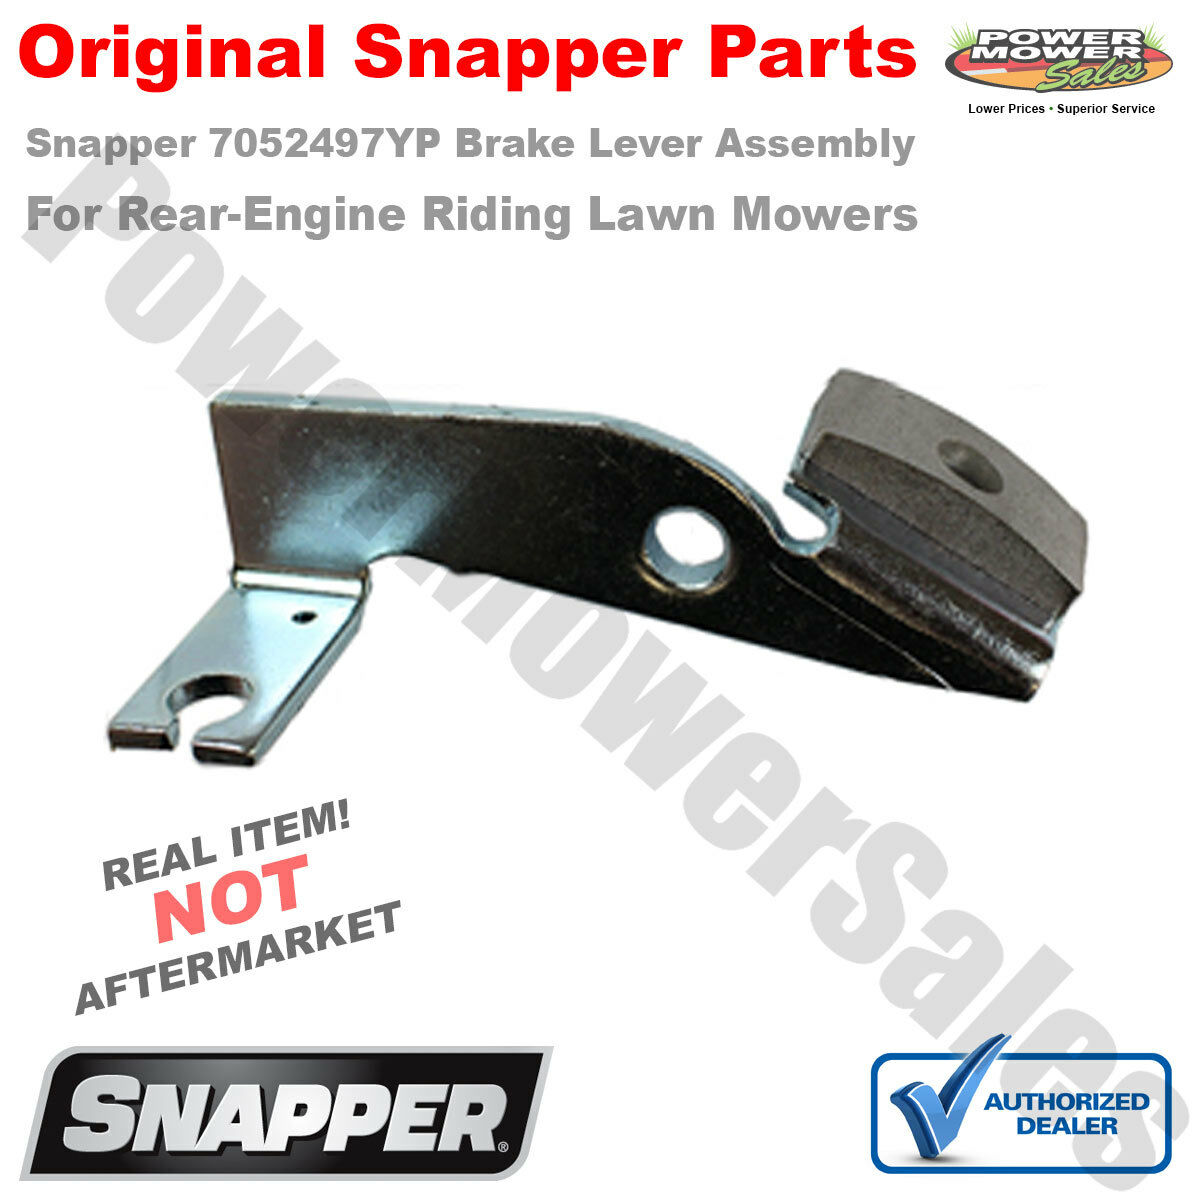 Genuine Snapper Brake Lever Assembly Part 7052497yp 52497 Ebay Lawn Mower Engine Diagram Norton Secured Powered By Verisign